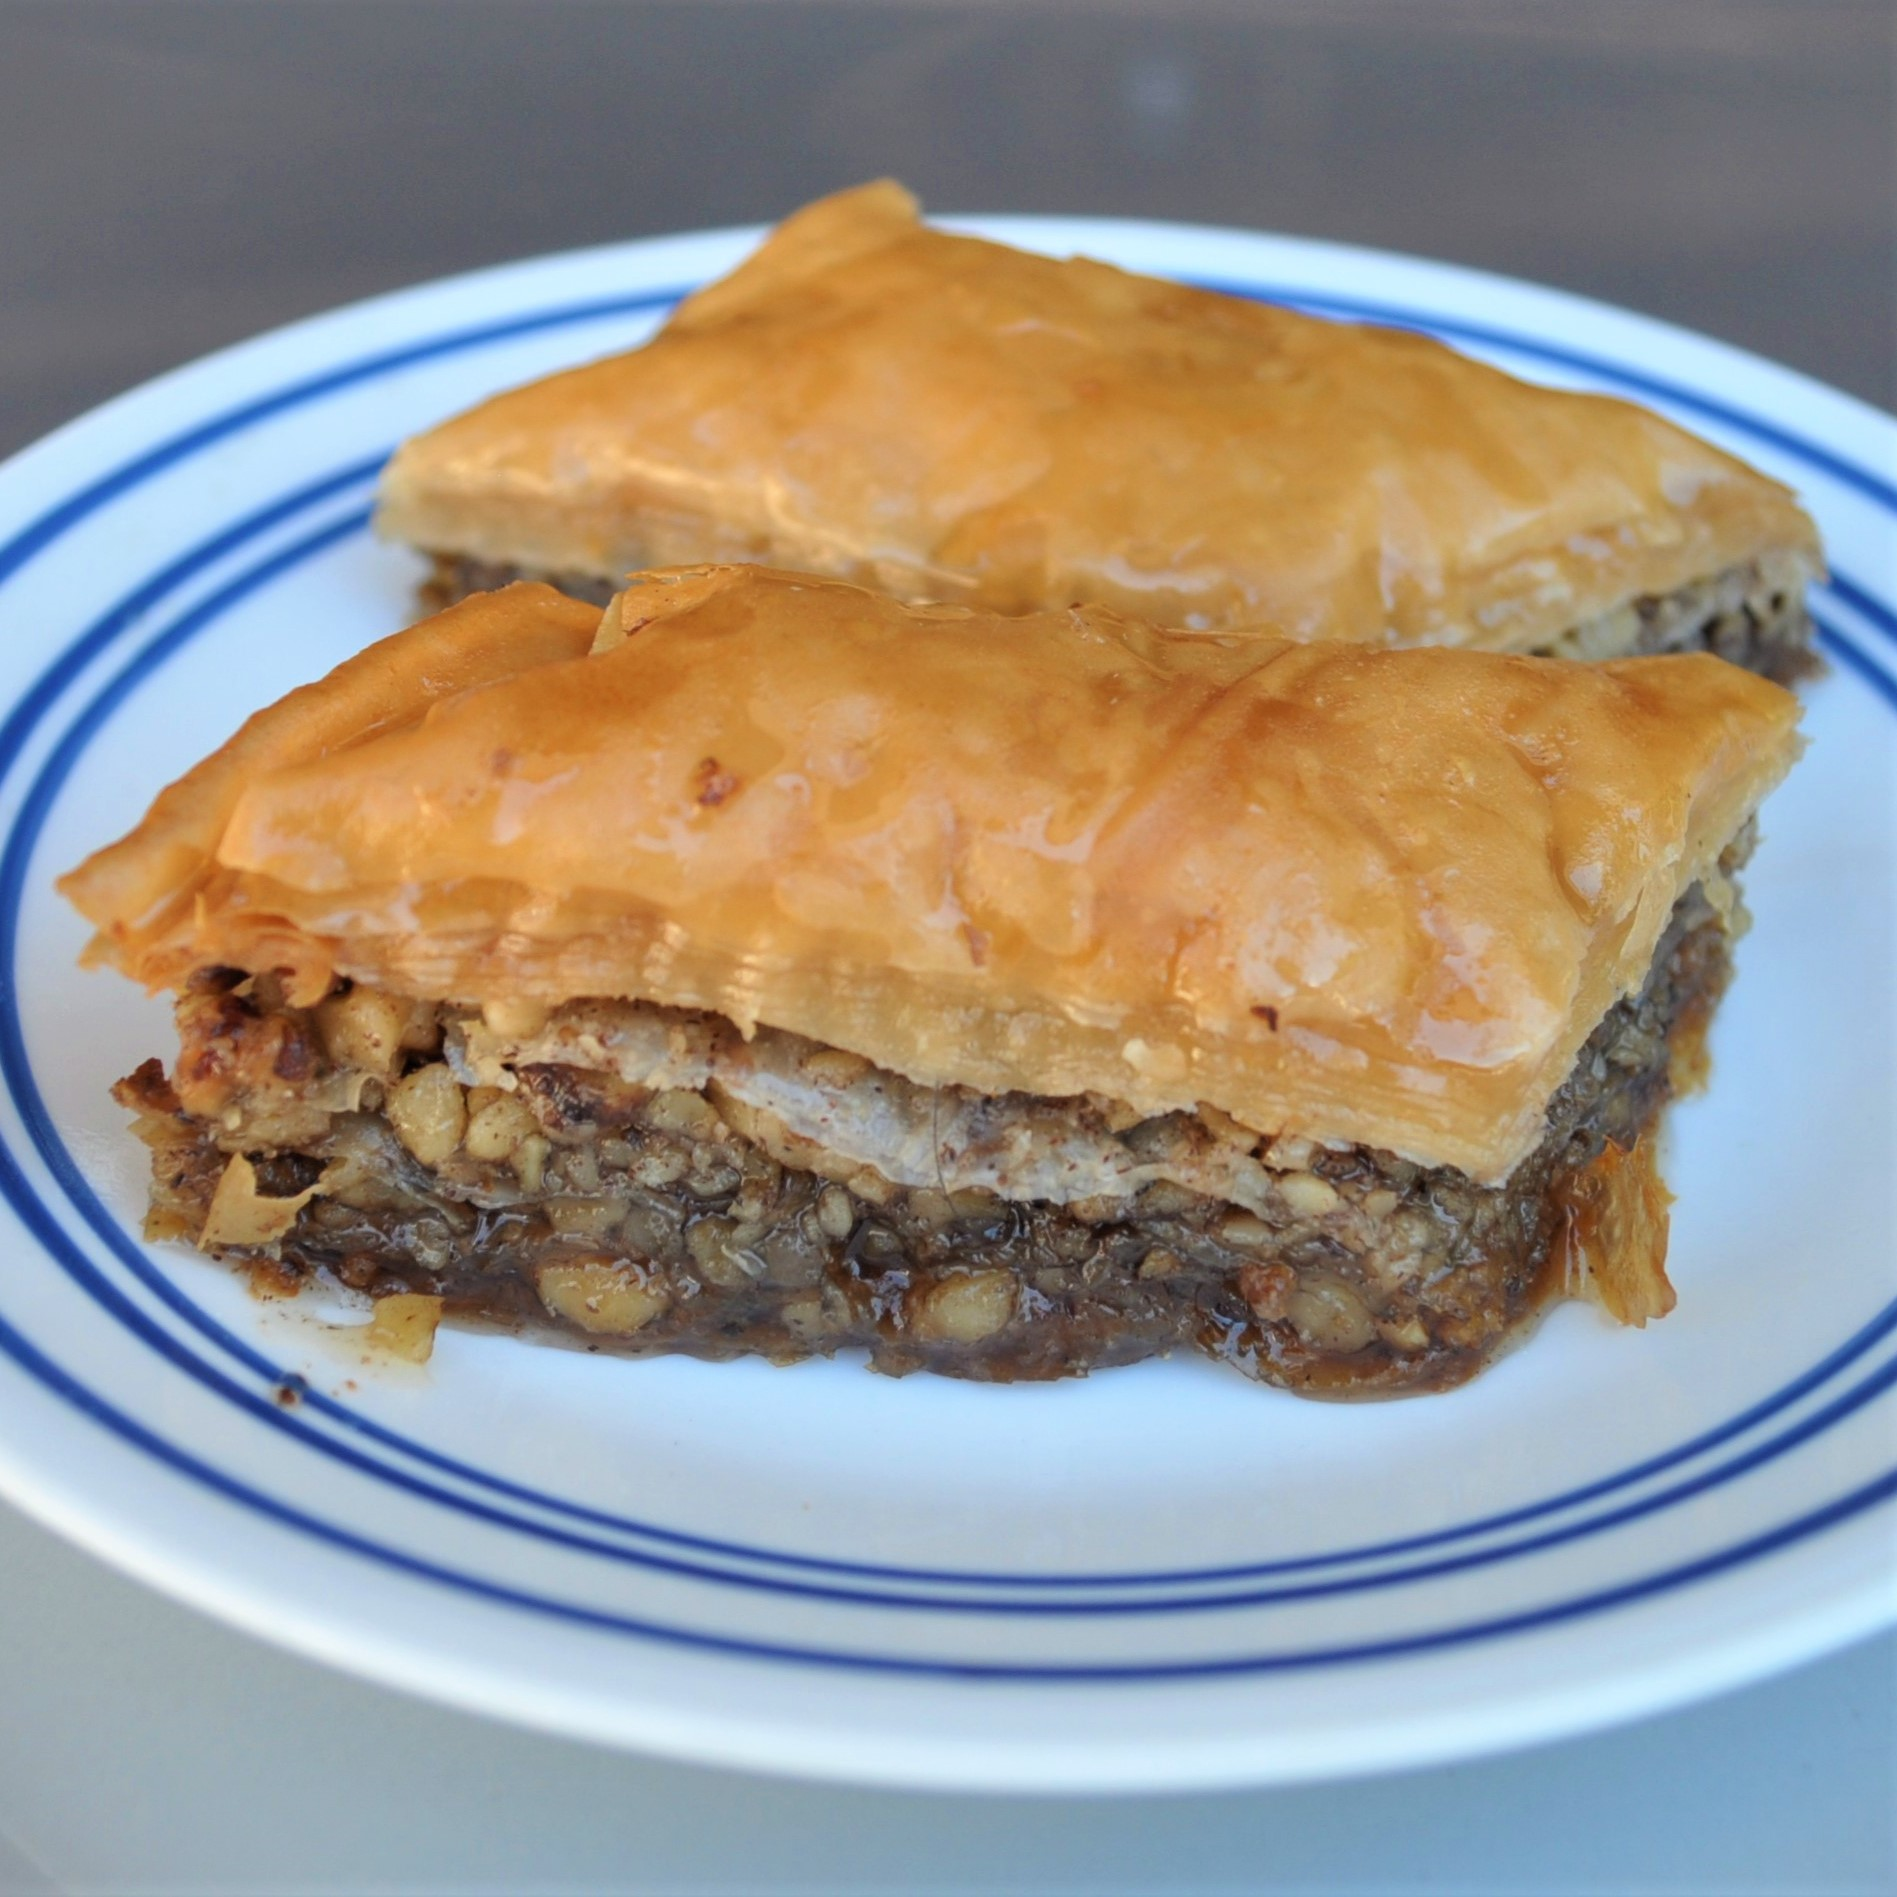 Two slices of baklava on a blue and white plate